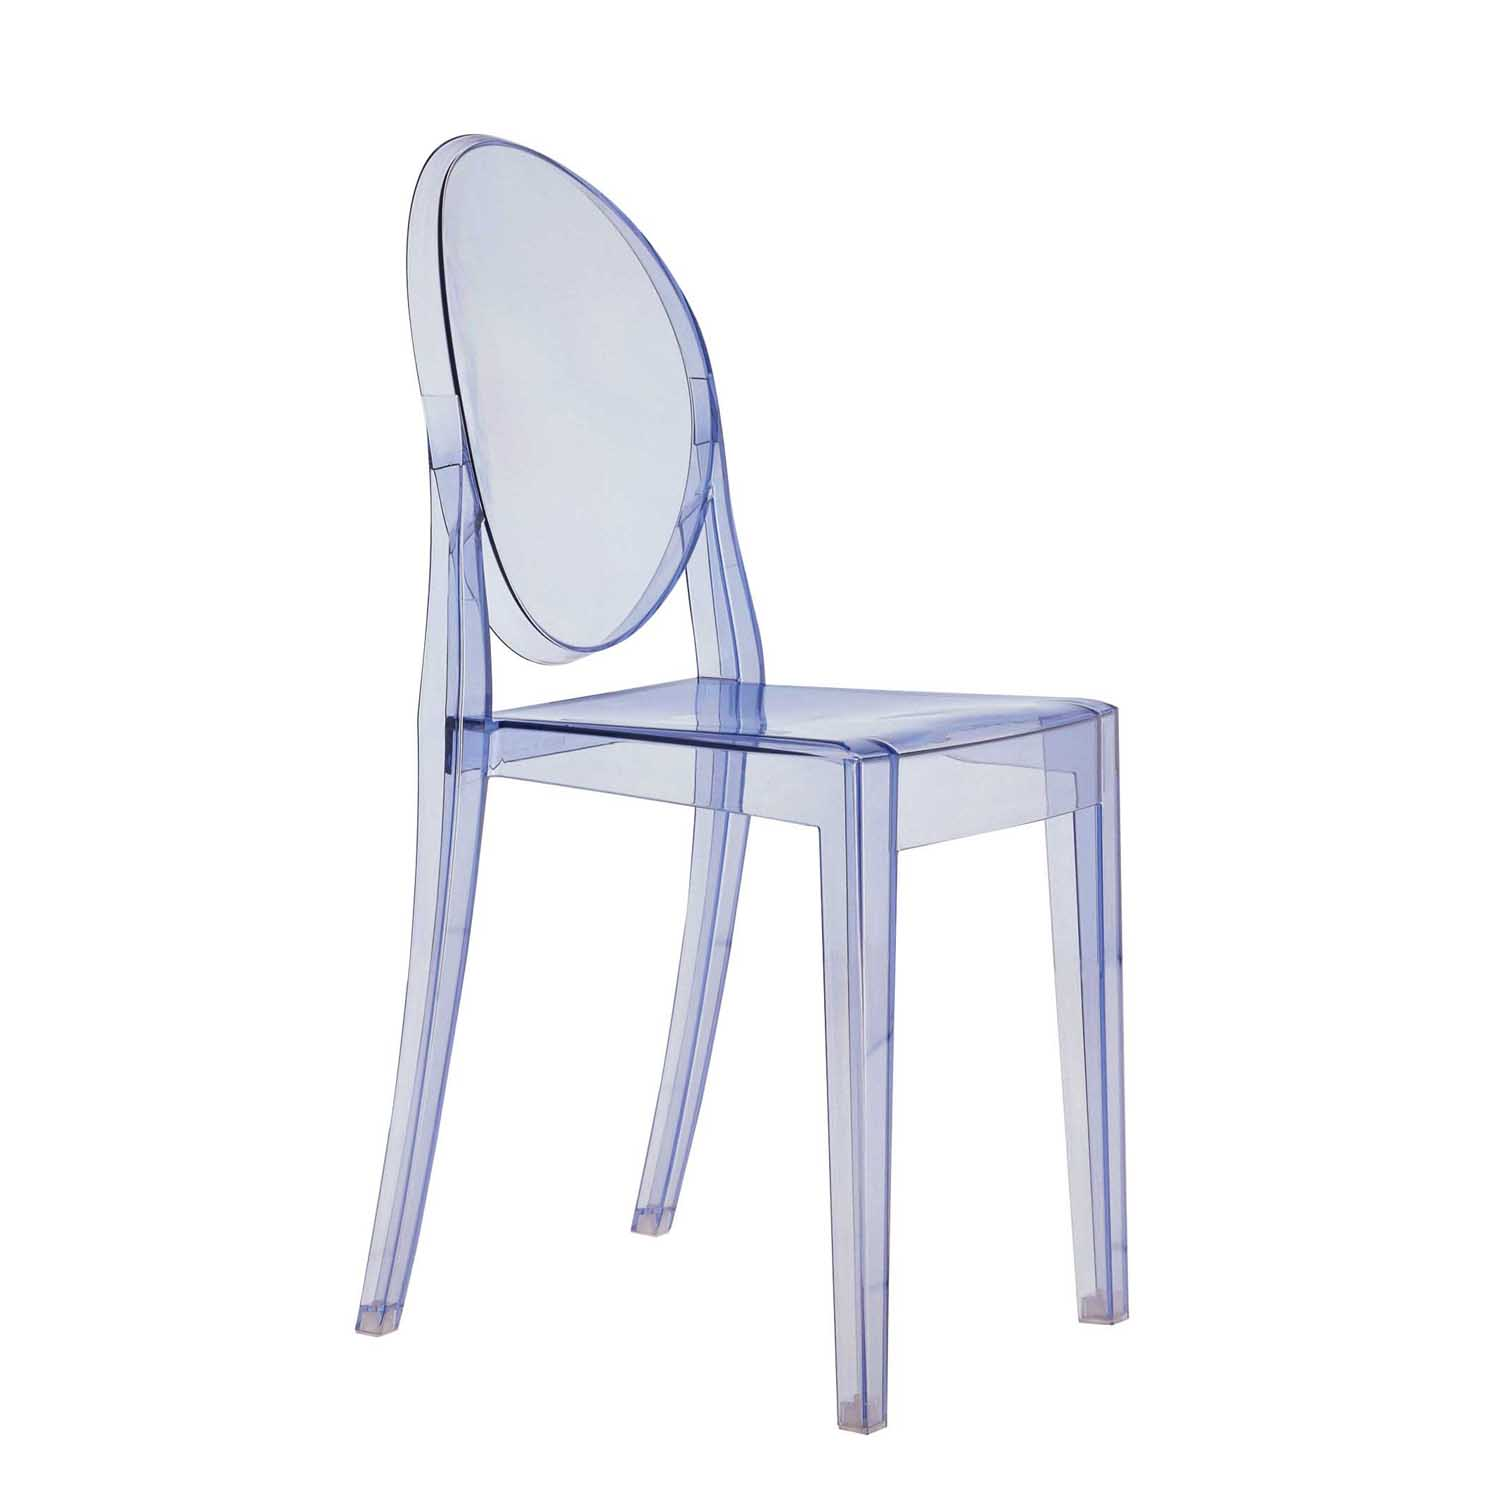 philippe starck ghost chair office price in pakistan people mr democratic design from the